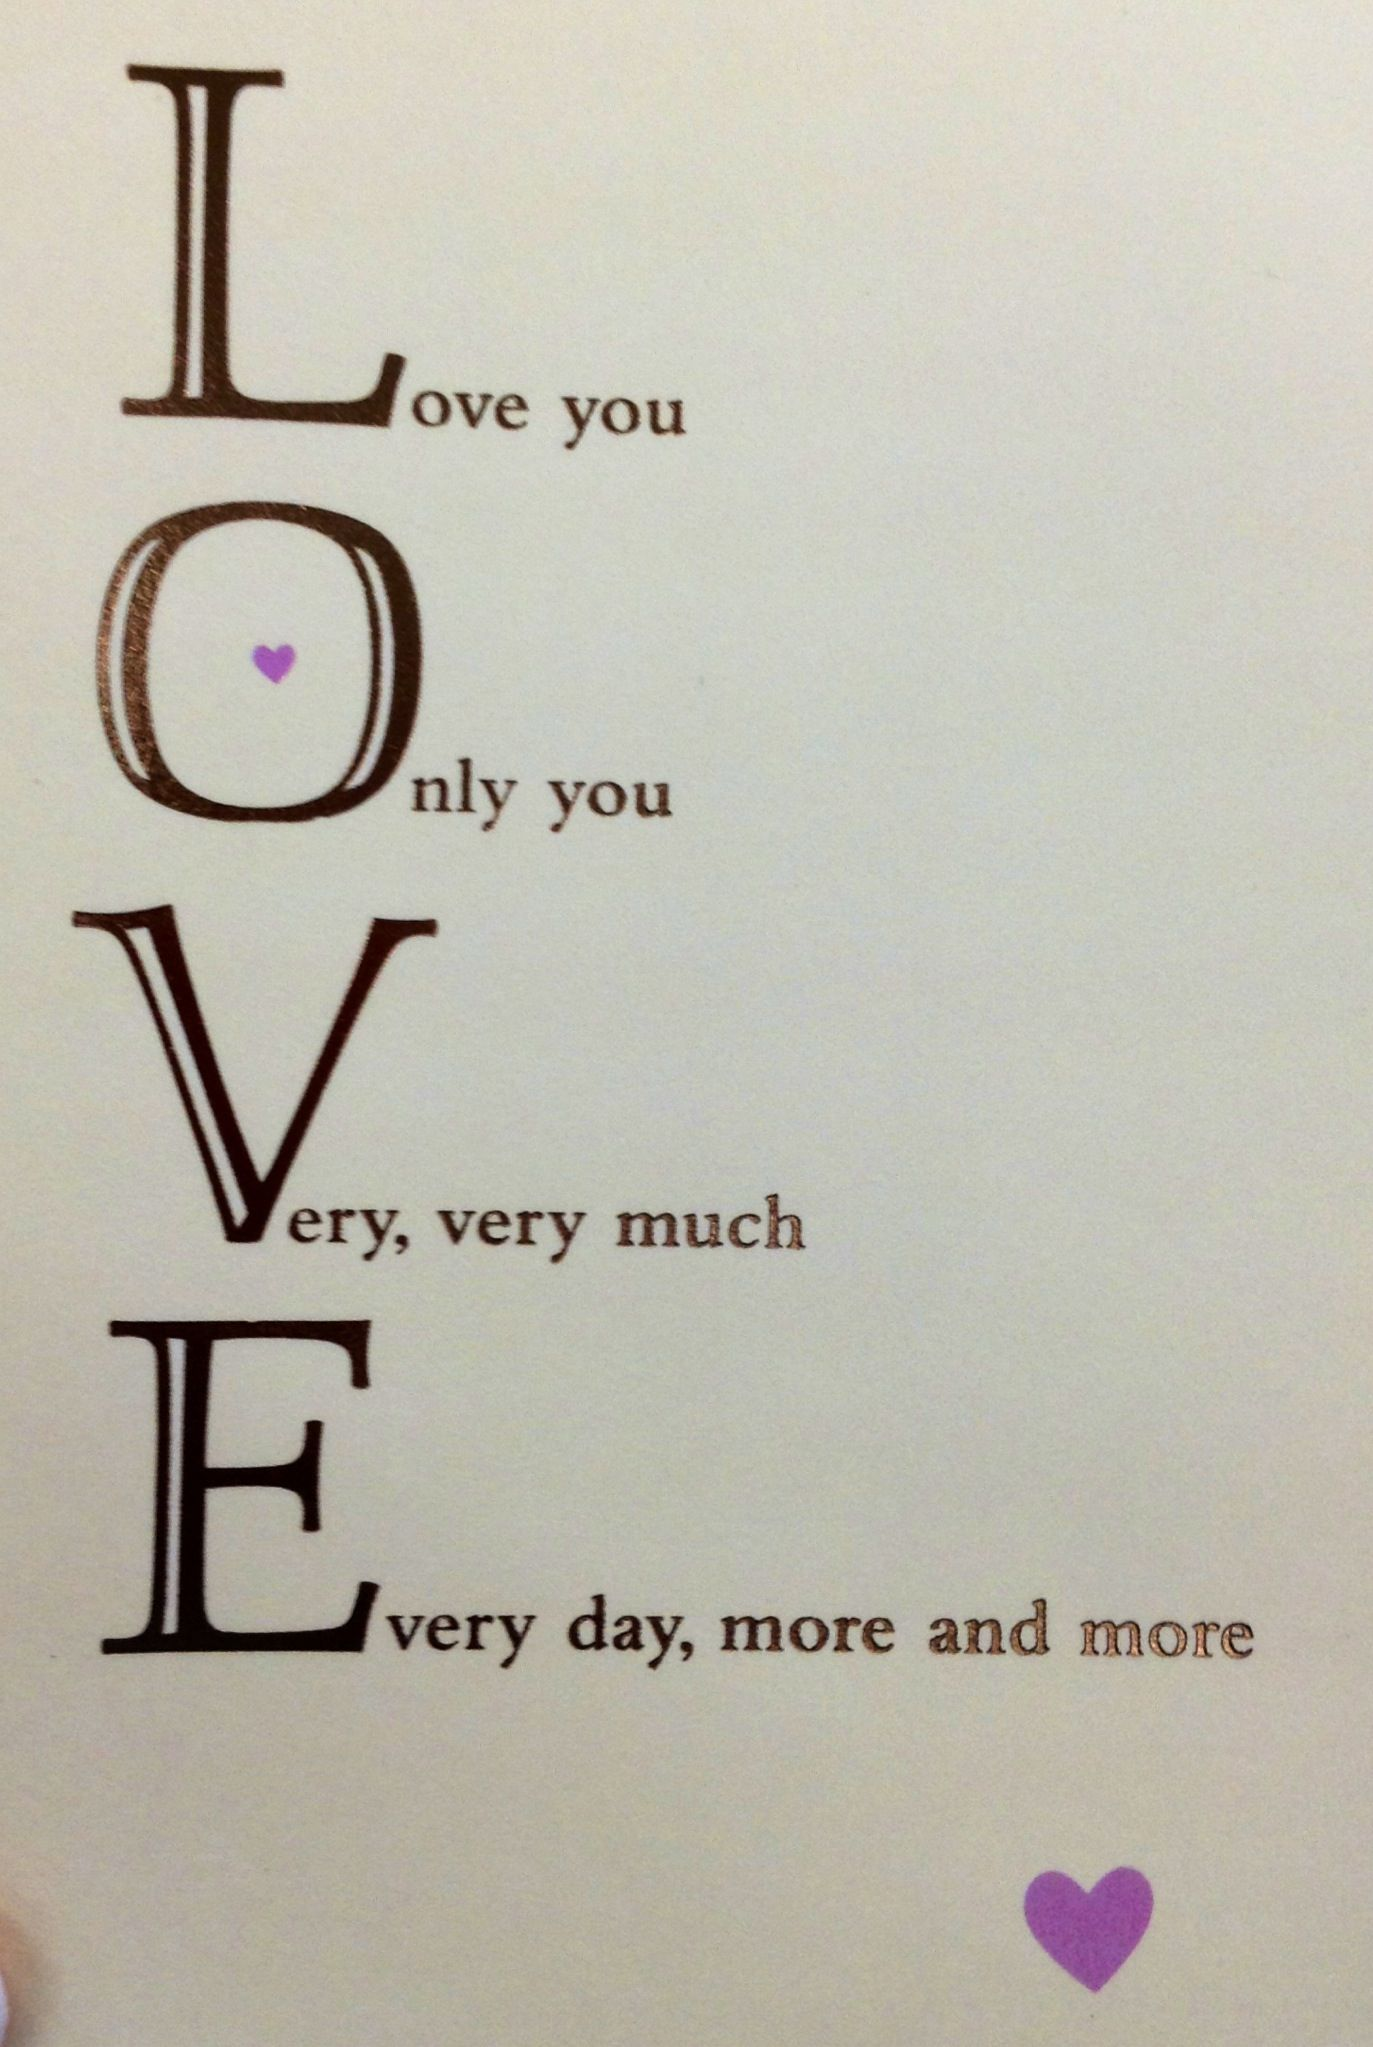 Quotes About Love P : Love You Quotes. QuotesGram